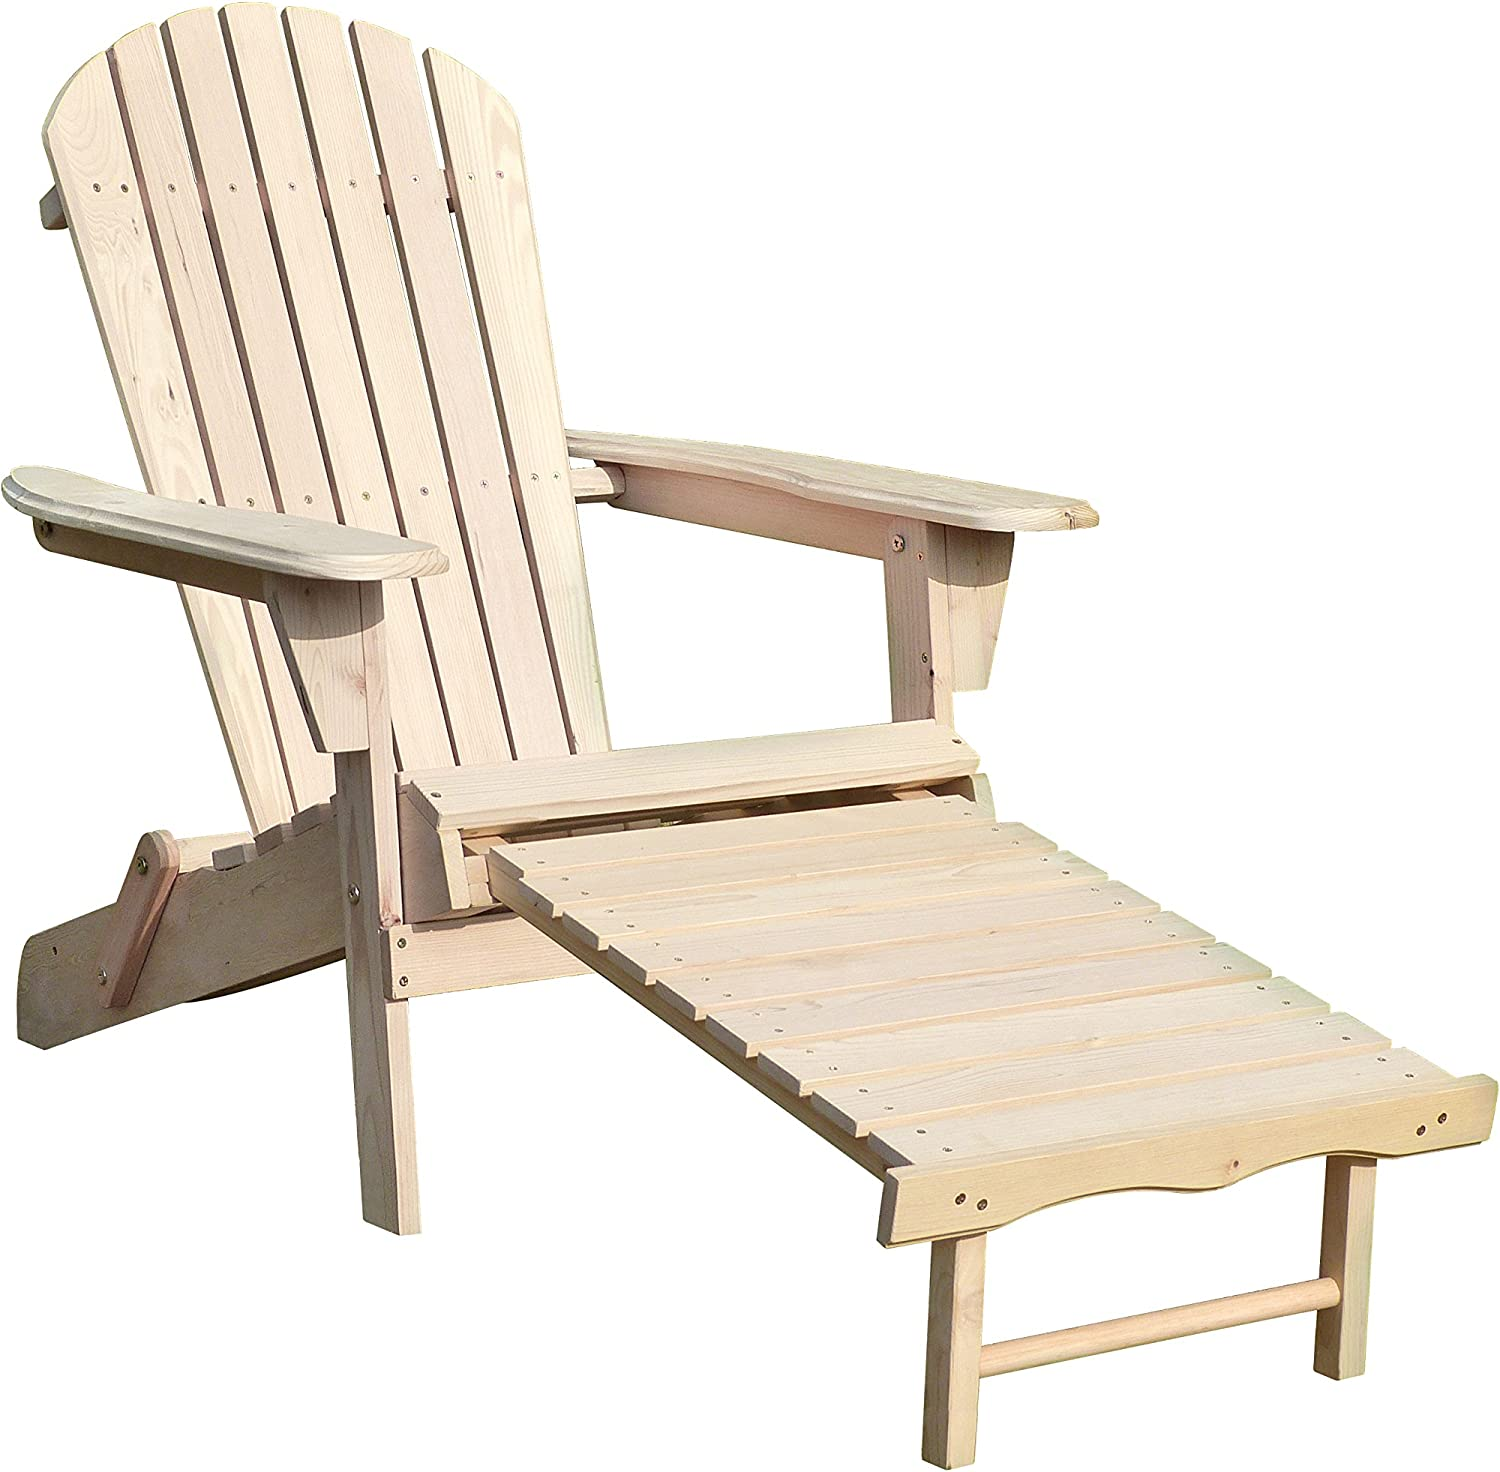 northbeam ADC8 Merry Garden Adirondack Chair Kit with Pullout  Ottoman